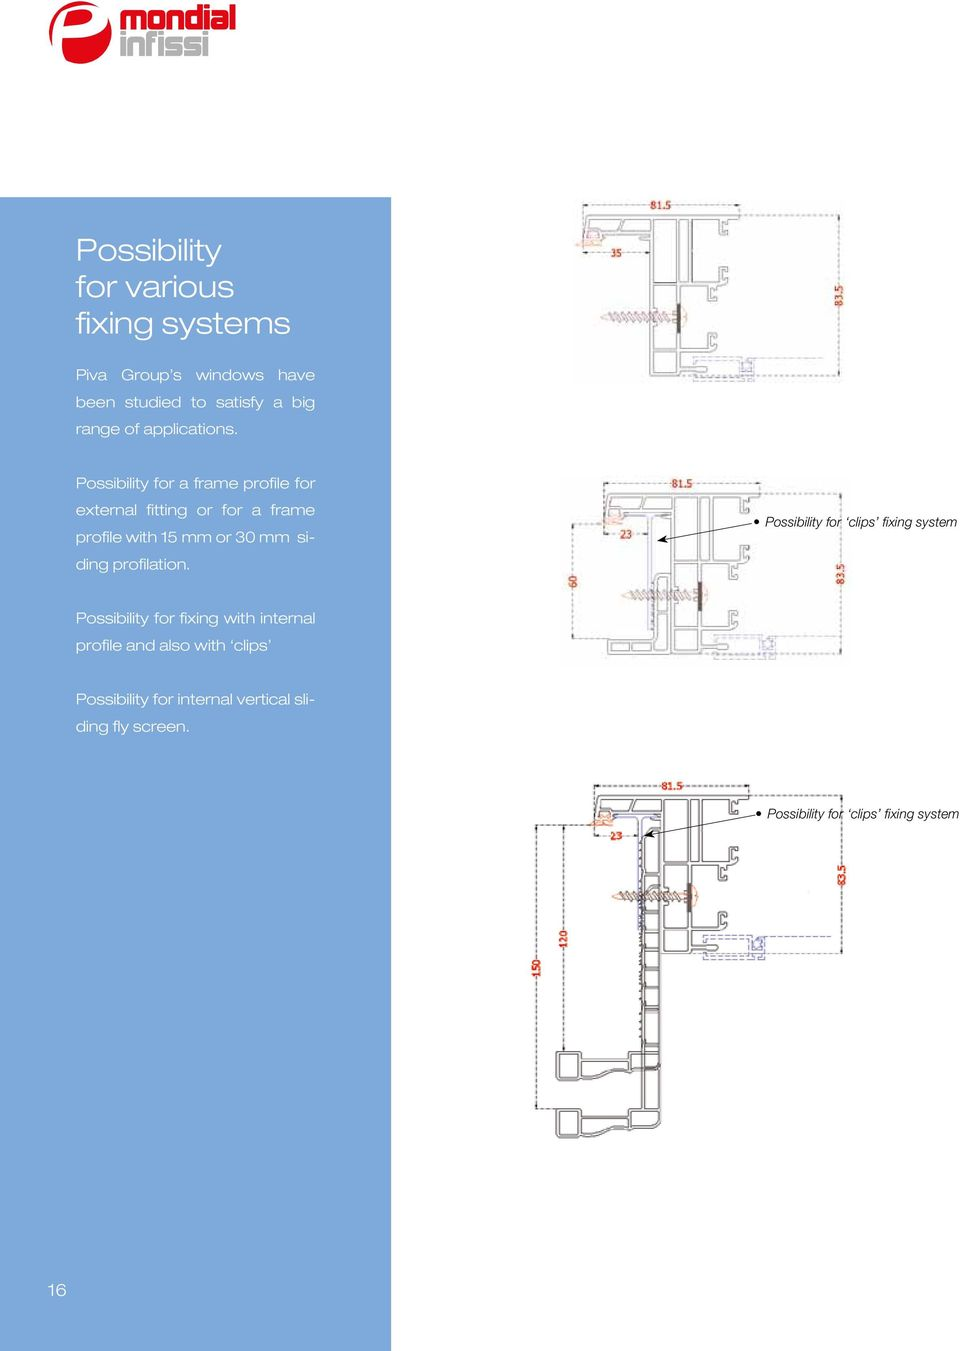 Possibility for a frame profile for external fitting or for a frame profile with 15 mm or 30 mm siding